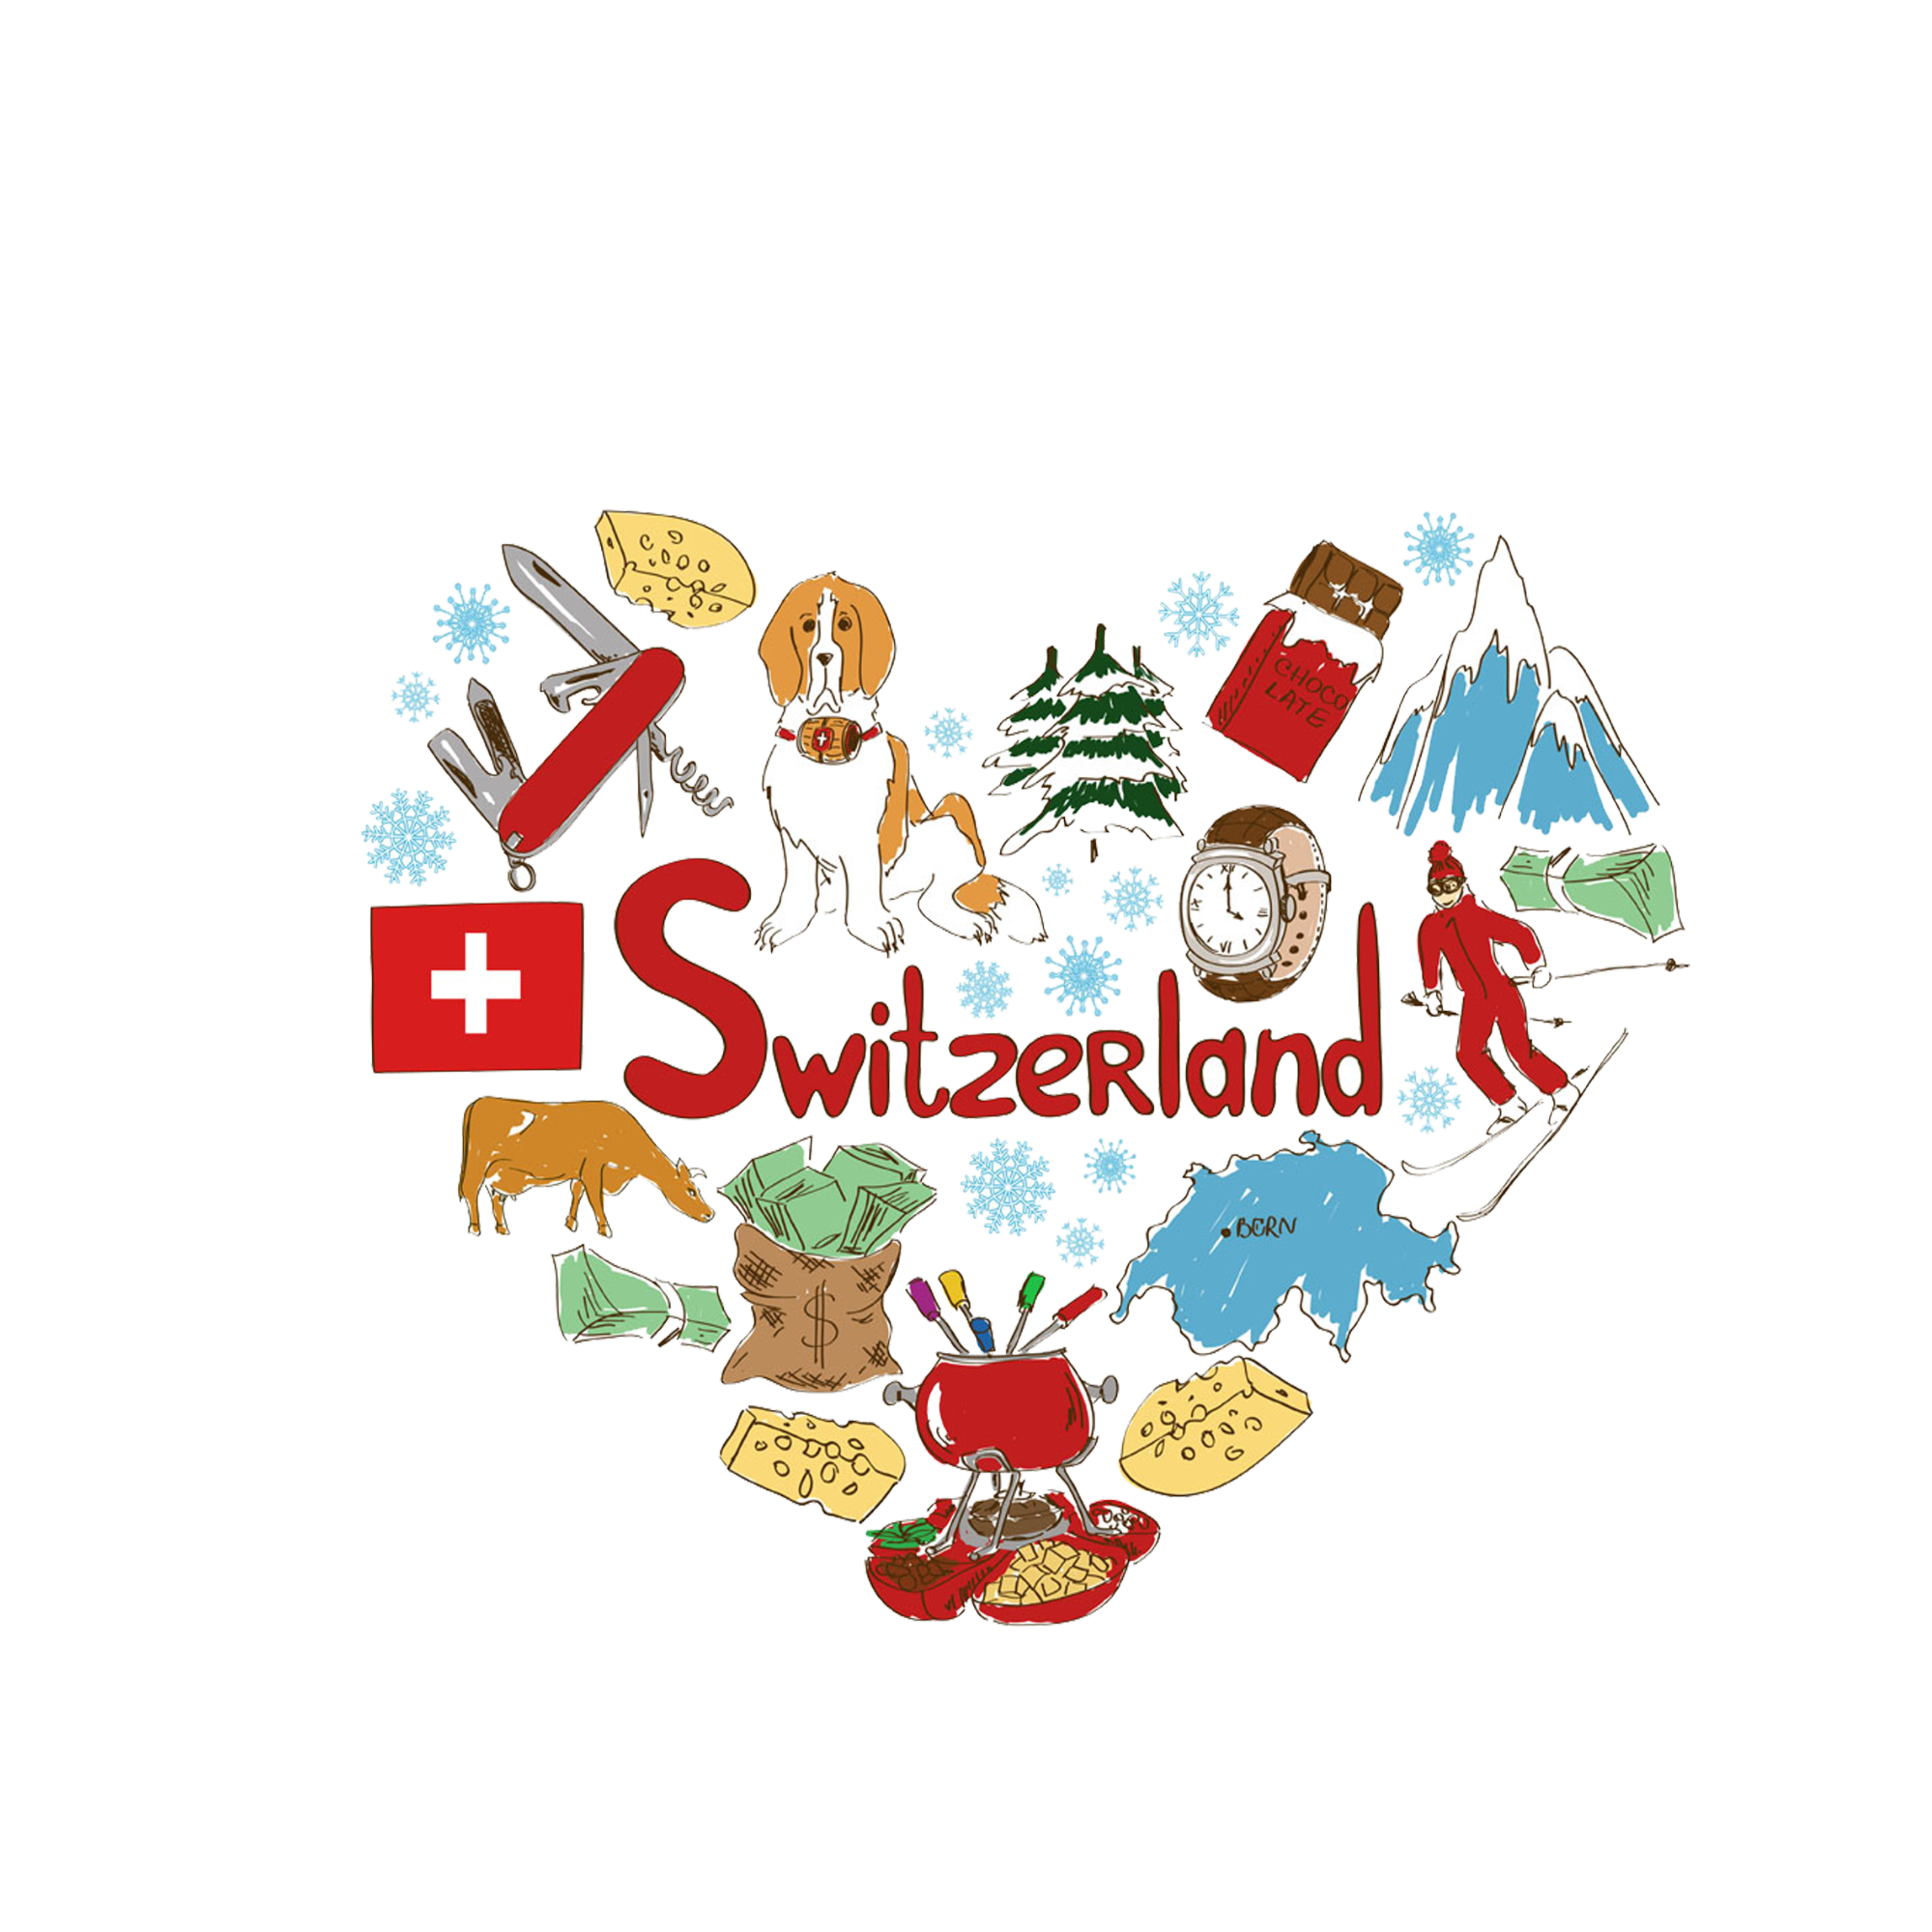 42 Fun Facts About Switzerland You Had No Idea Of